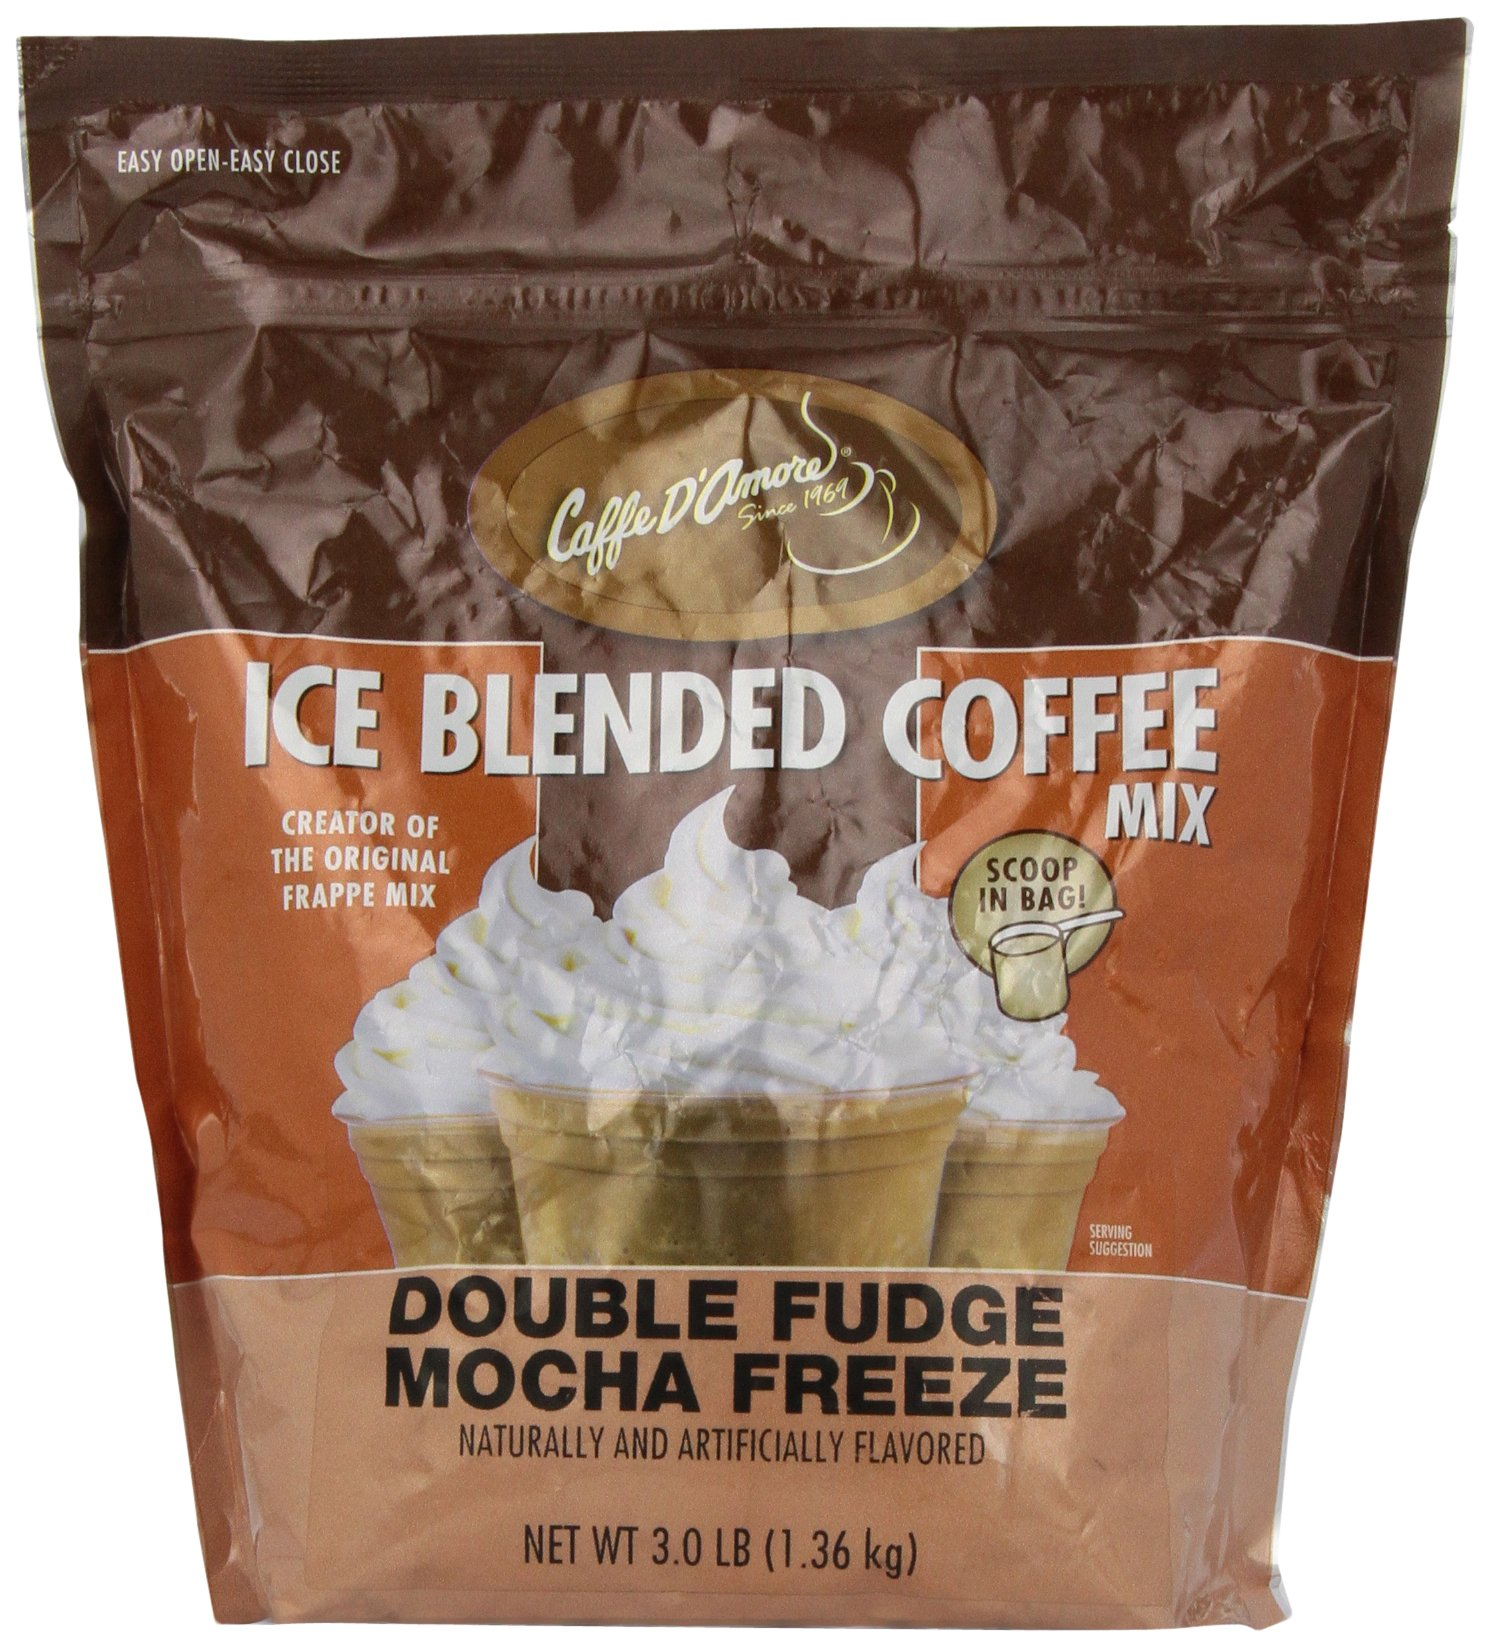 DaVinci Gourmet Iced Coffee Double Fudge Mocha Blended Drink Mix, 3 Pounds by DaVinci Gourmet